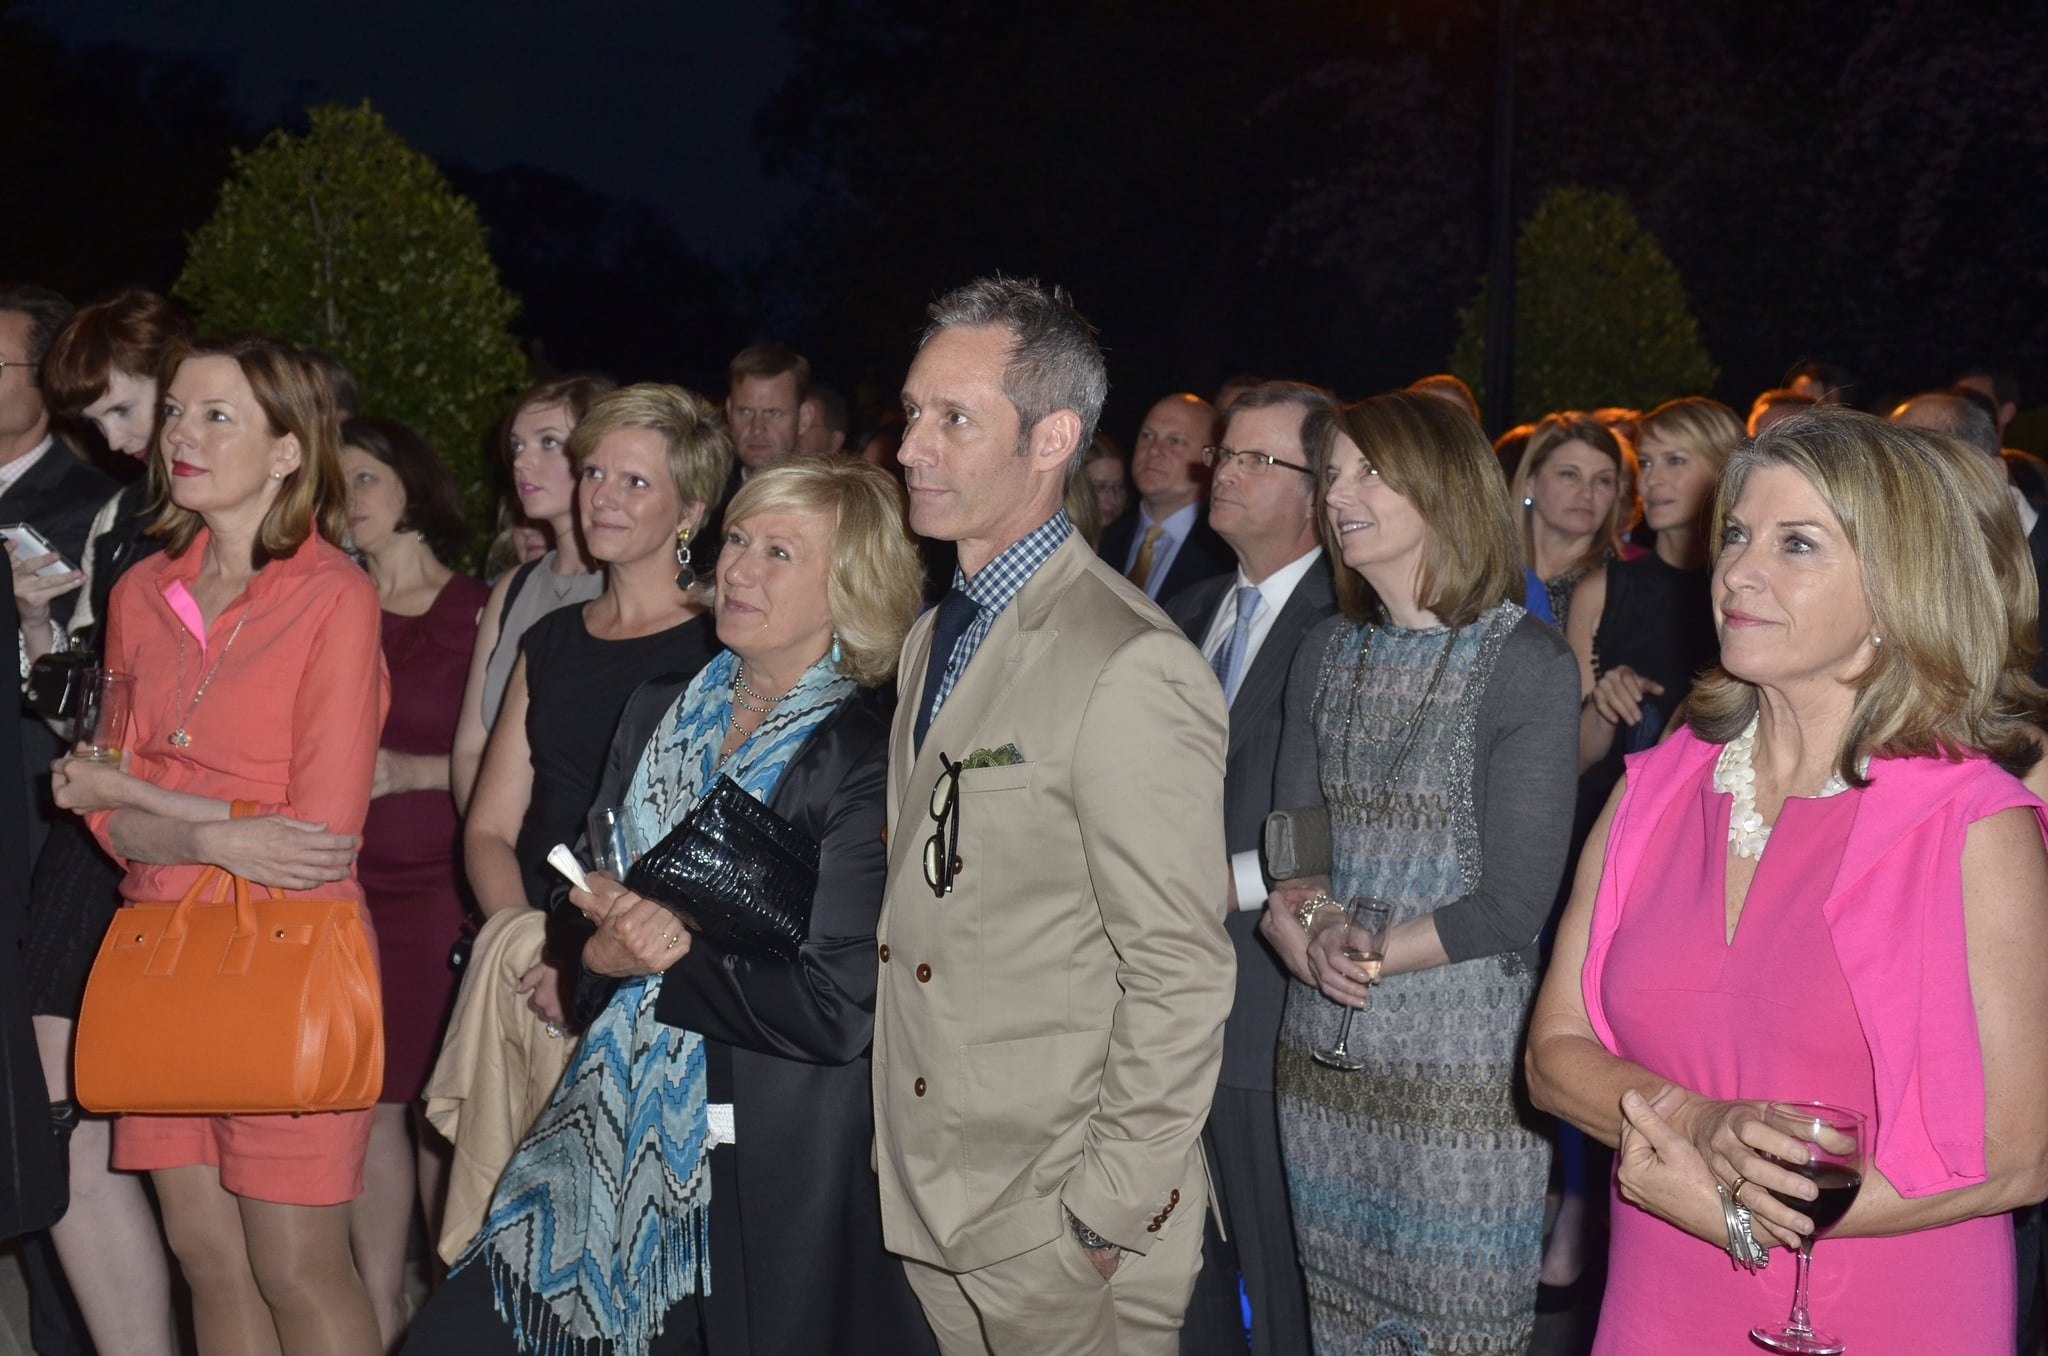 Husband and wife and House of Cards costars Michael Gill and Jayne Atkinson stayed close at the Capitol File event on Friday.